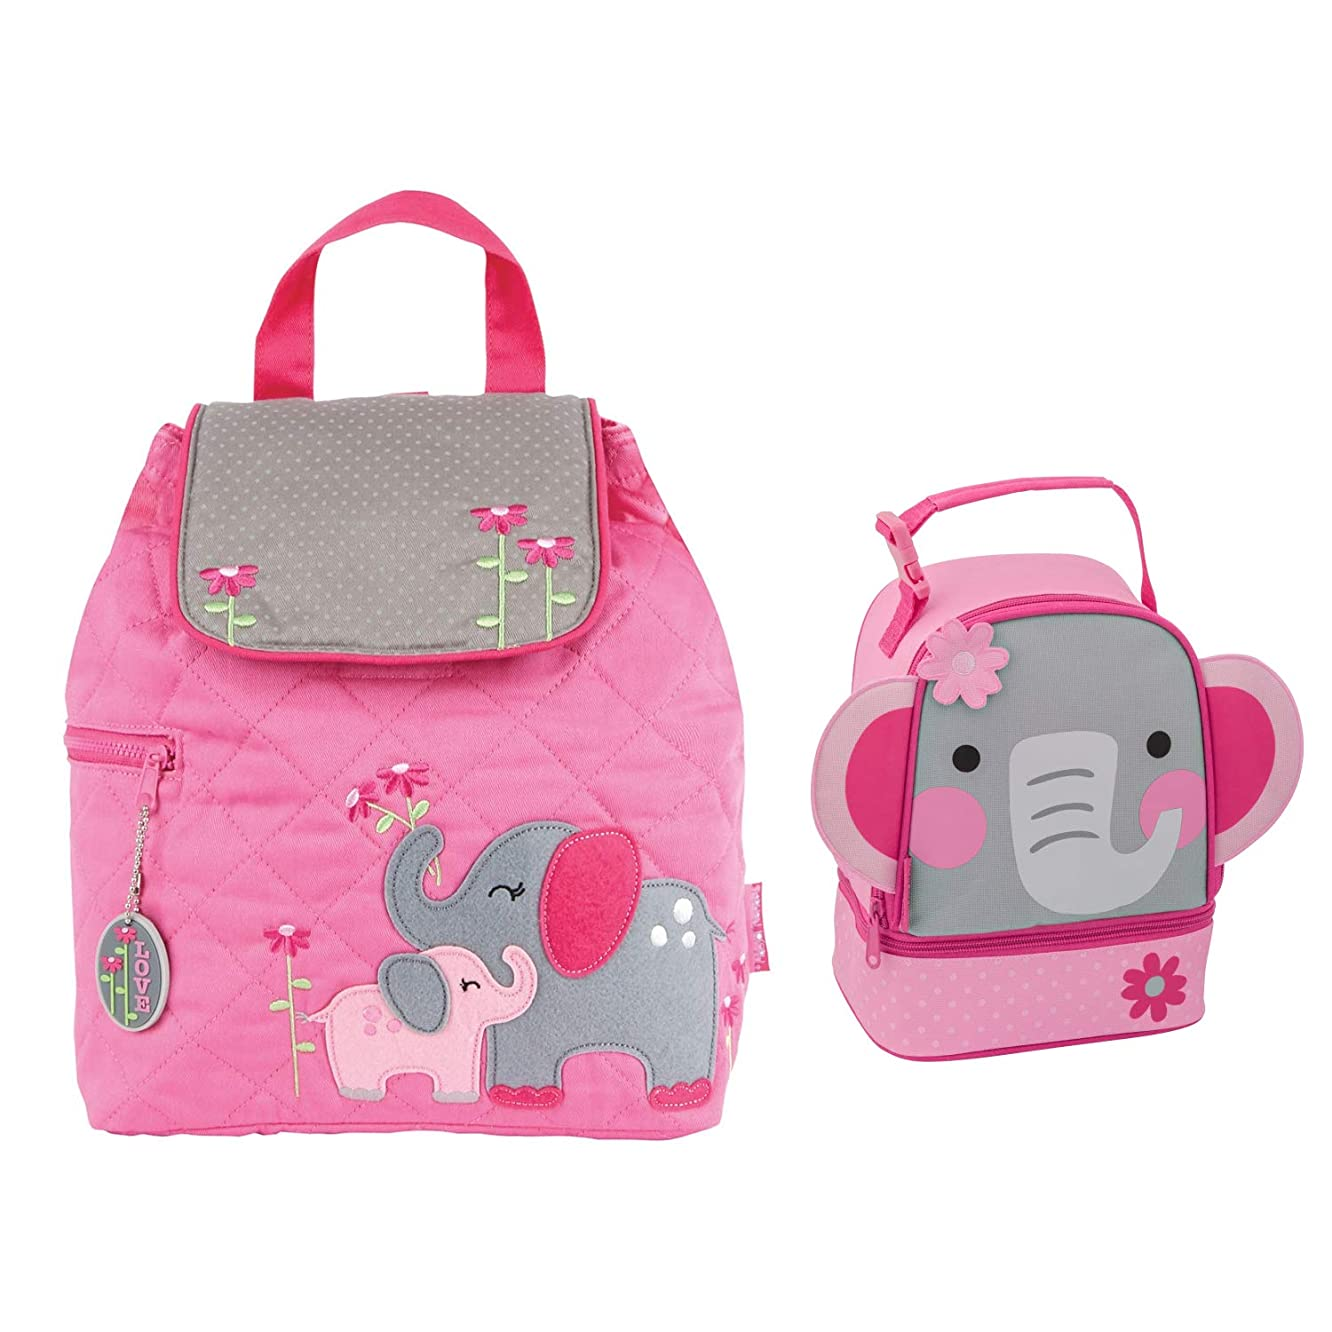 Stephen Joseph Quilted Elephant Backpack and Lunch Pal for Girls